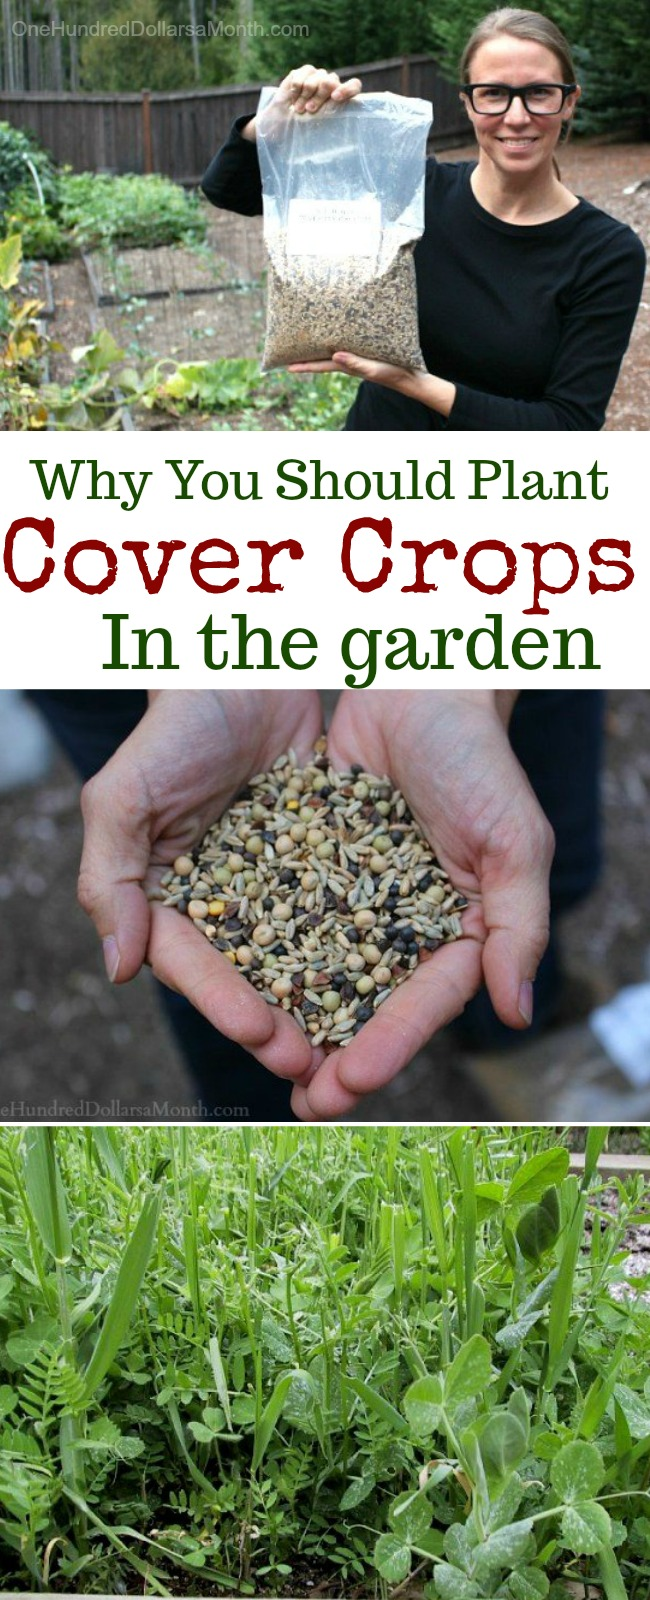 It's Time to Get Your Cover Crops Planted